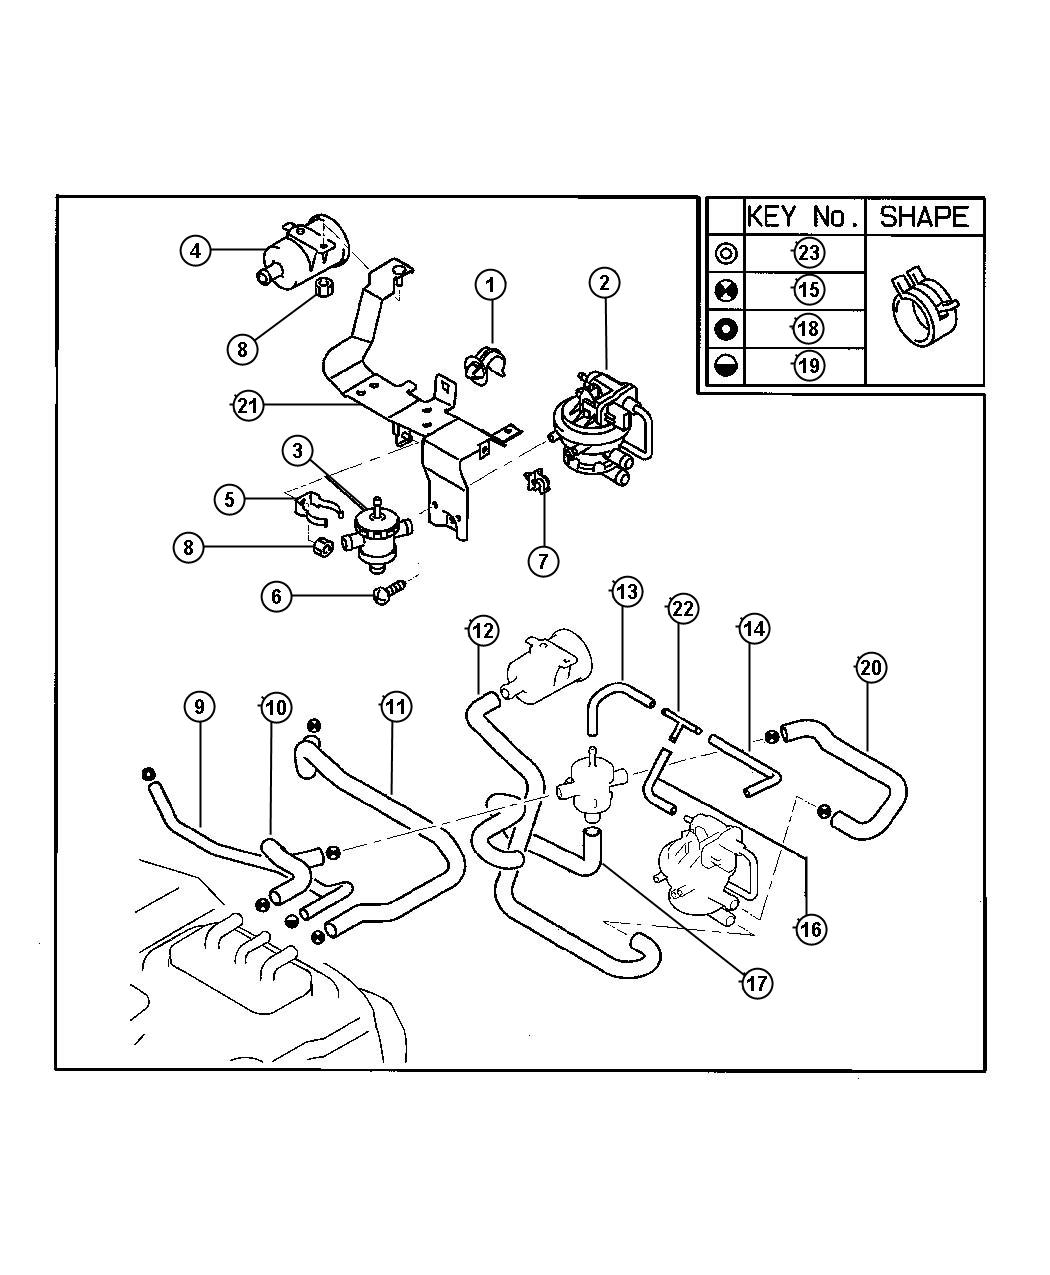 1993 dodge dynasty fuse box  dodge  auto wiring diagram